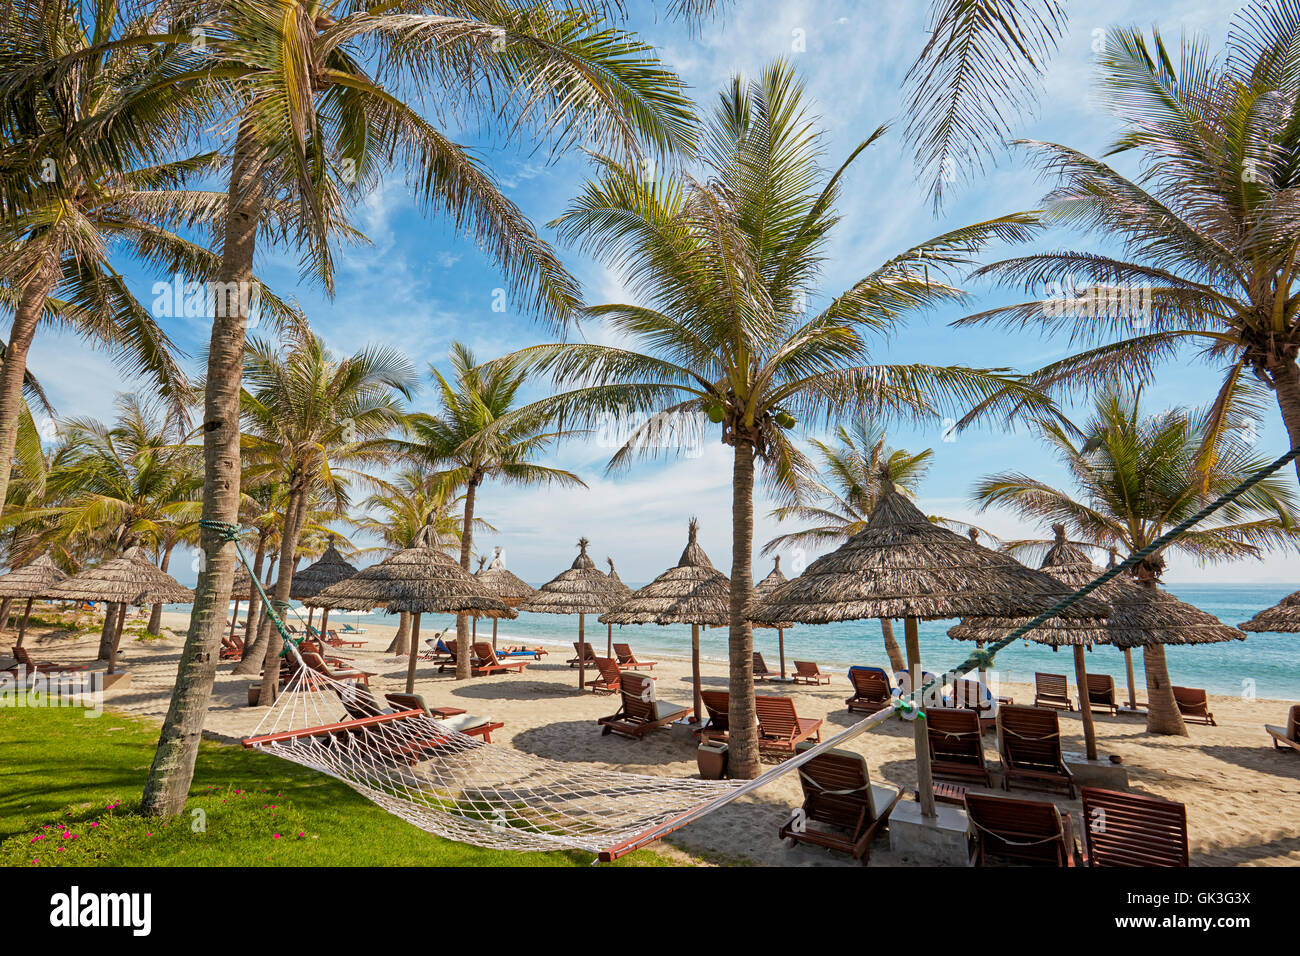 beach chairs and umbrellas pictures folding chair patent palm garden resort. cu dai beach, hoi an, quang nam province stock photo: 115019182 - alamy